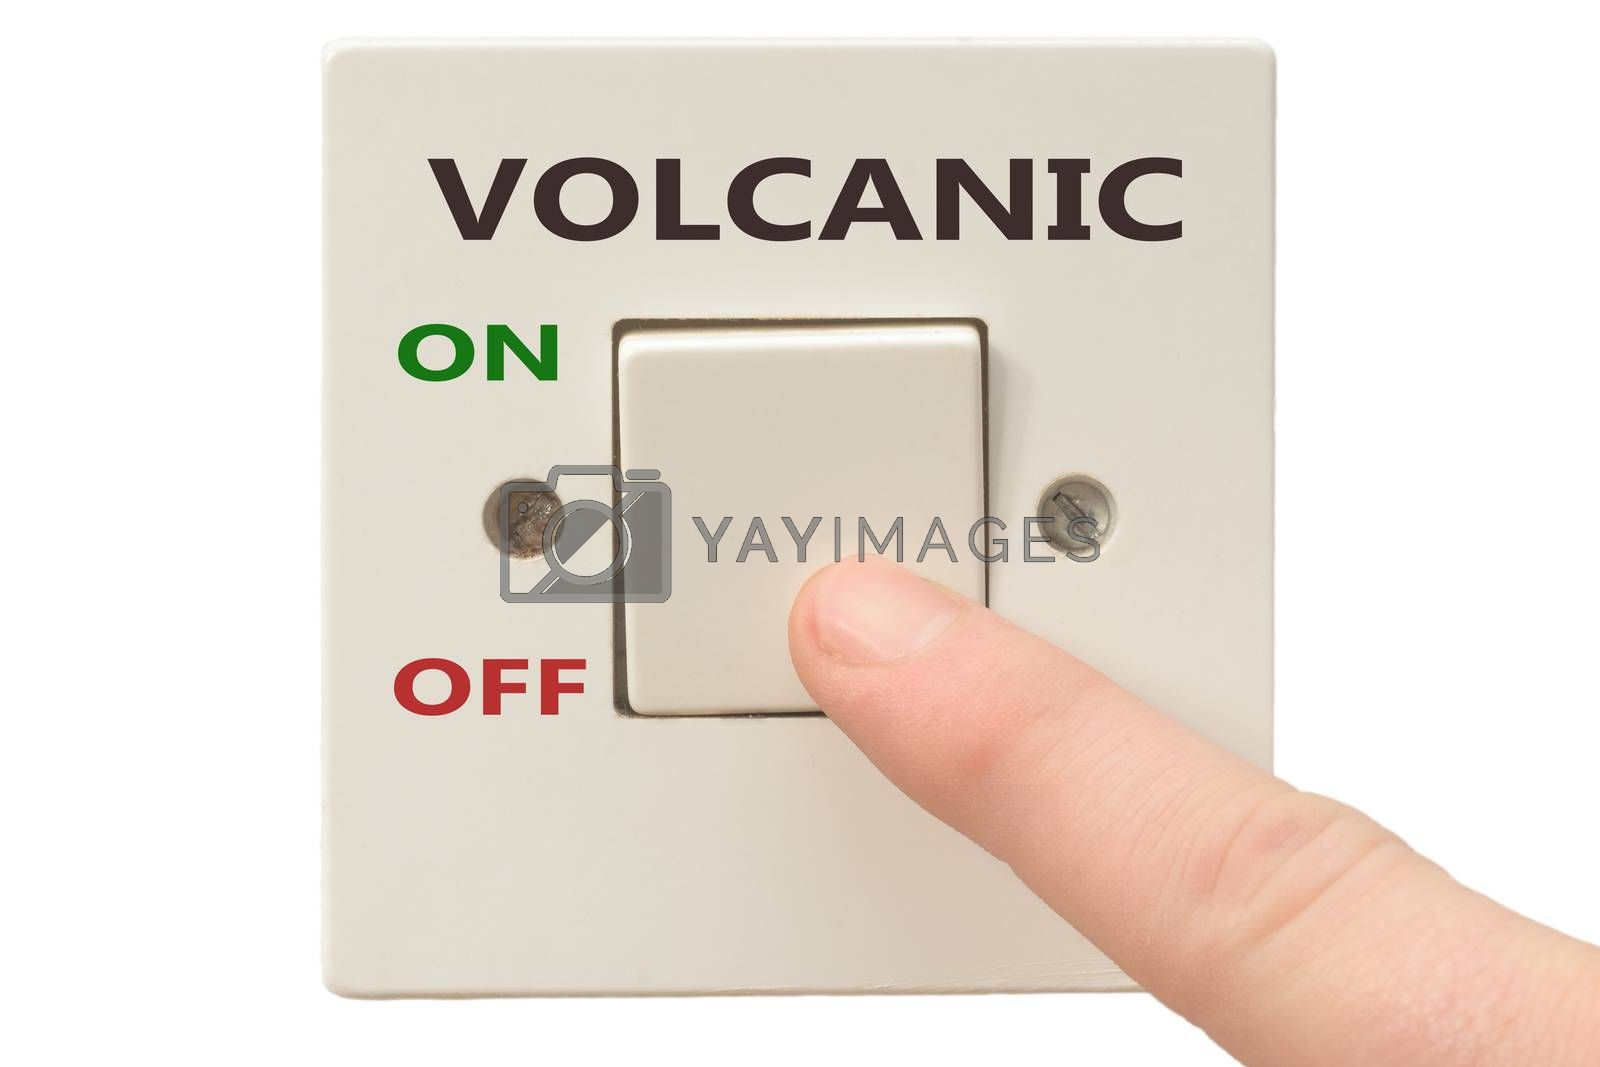 Turning off Volcanic with finger on electrical switch